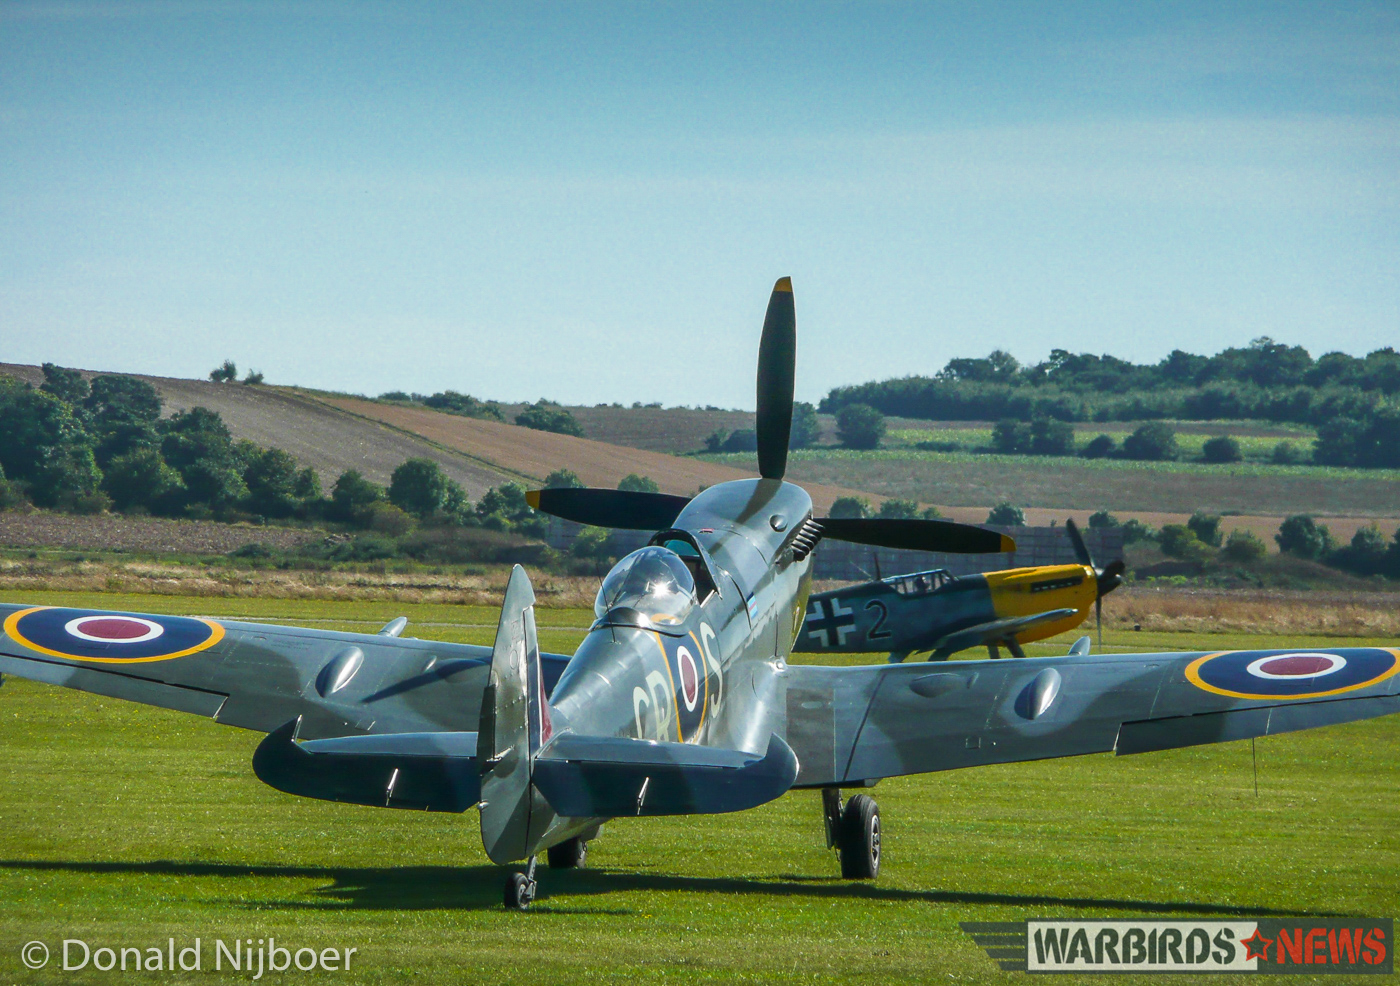 Supermarine Spitfire Mk.XVI TD248 sits on the grass at Duxford while a Hispano Buchon dummied up to represent a Messerschmitt Bf 109 taxies by in the background. (photo by Donald Nijboer)